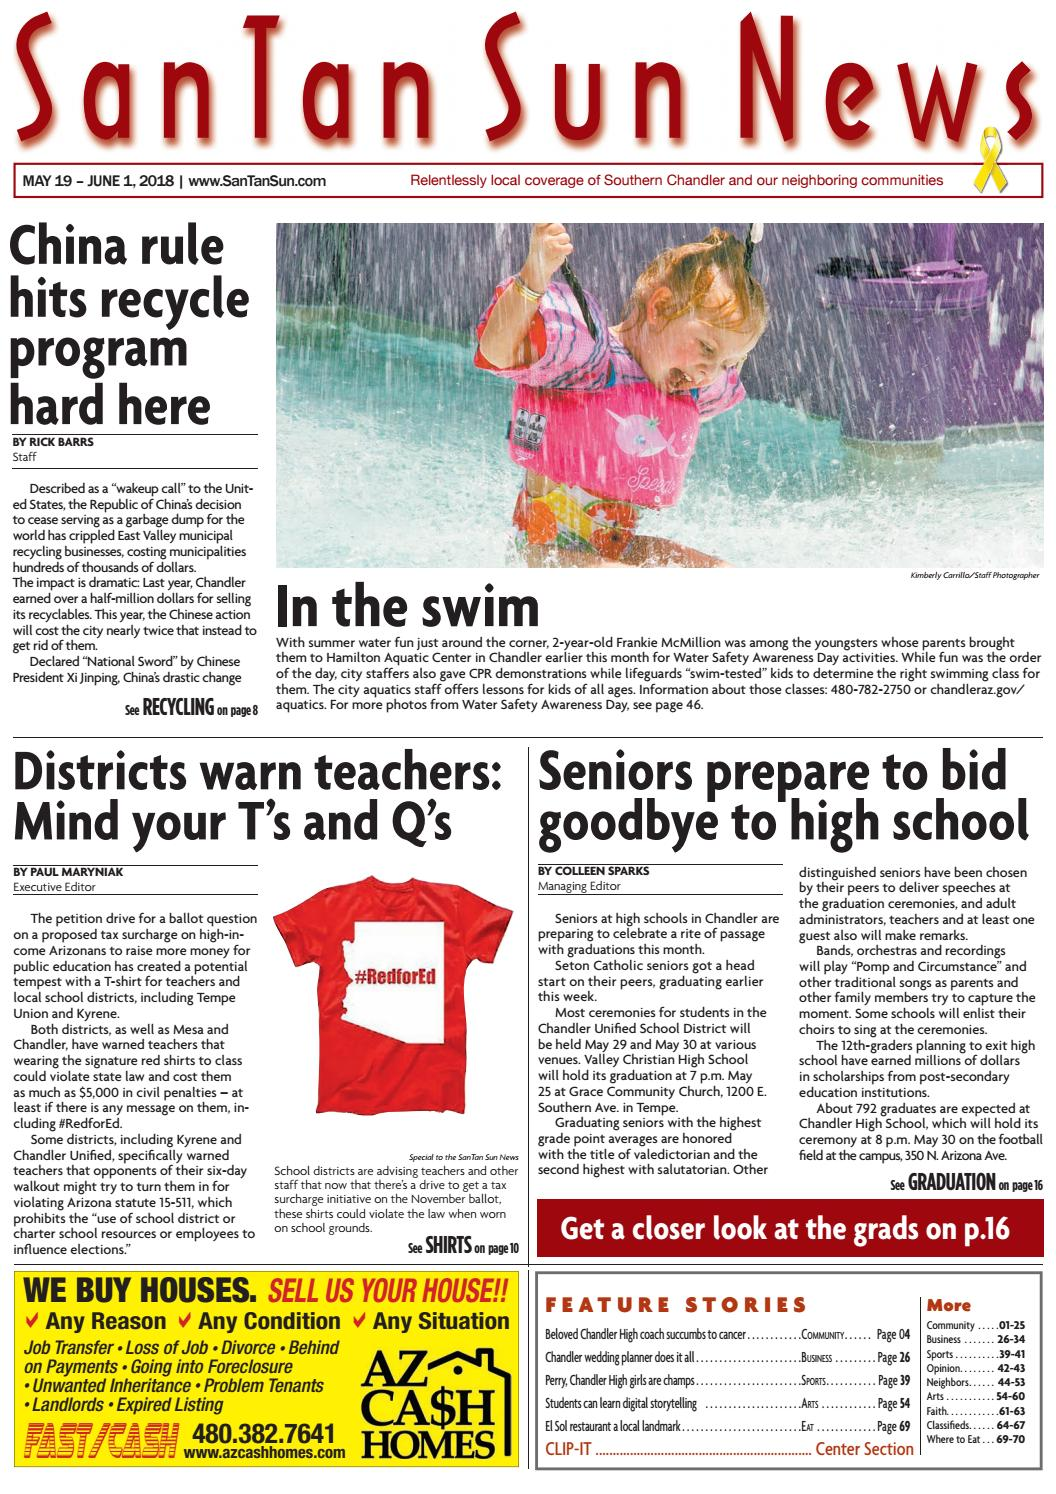 Santan Sun News May 19 2018 By Times Media Group Issuu Wet Folding Little Terrier Paper Unlimited